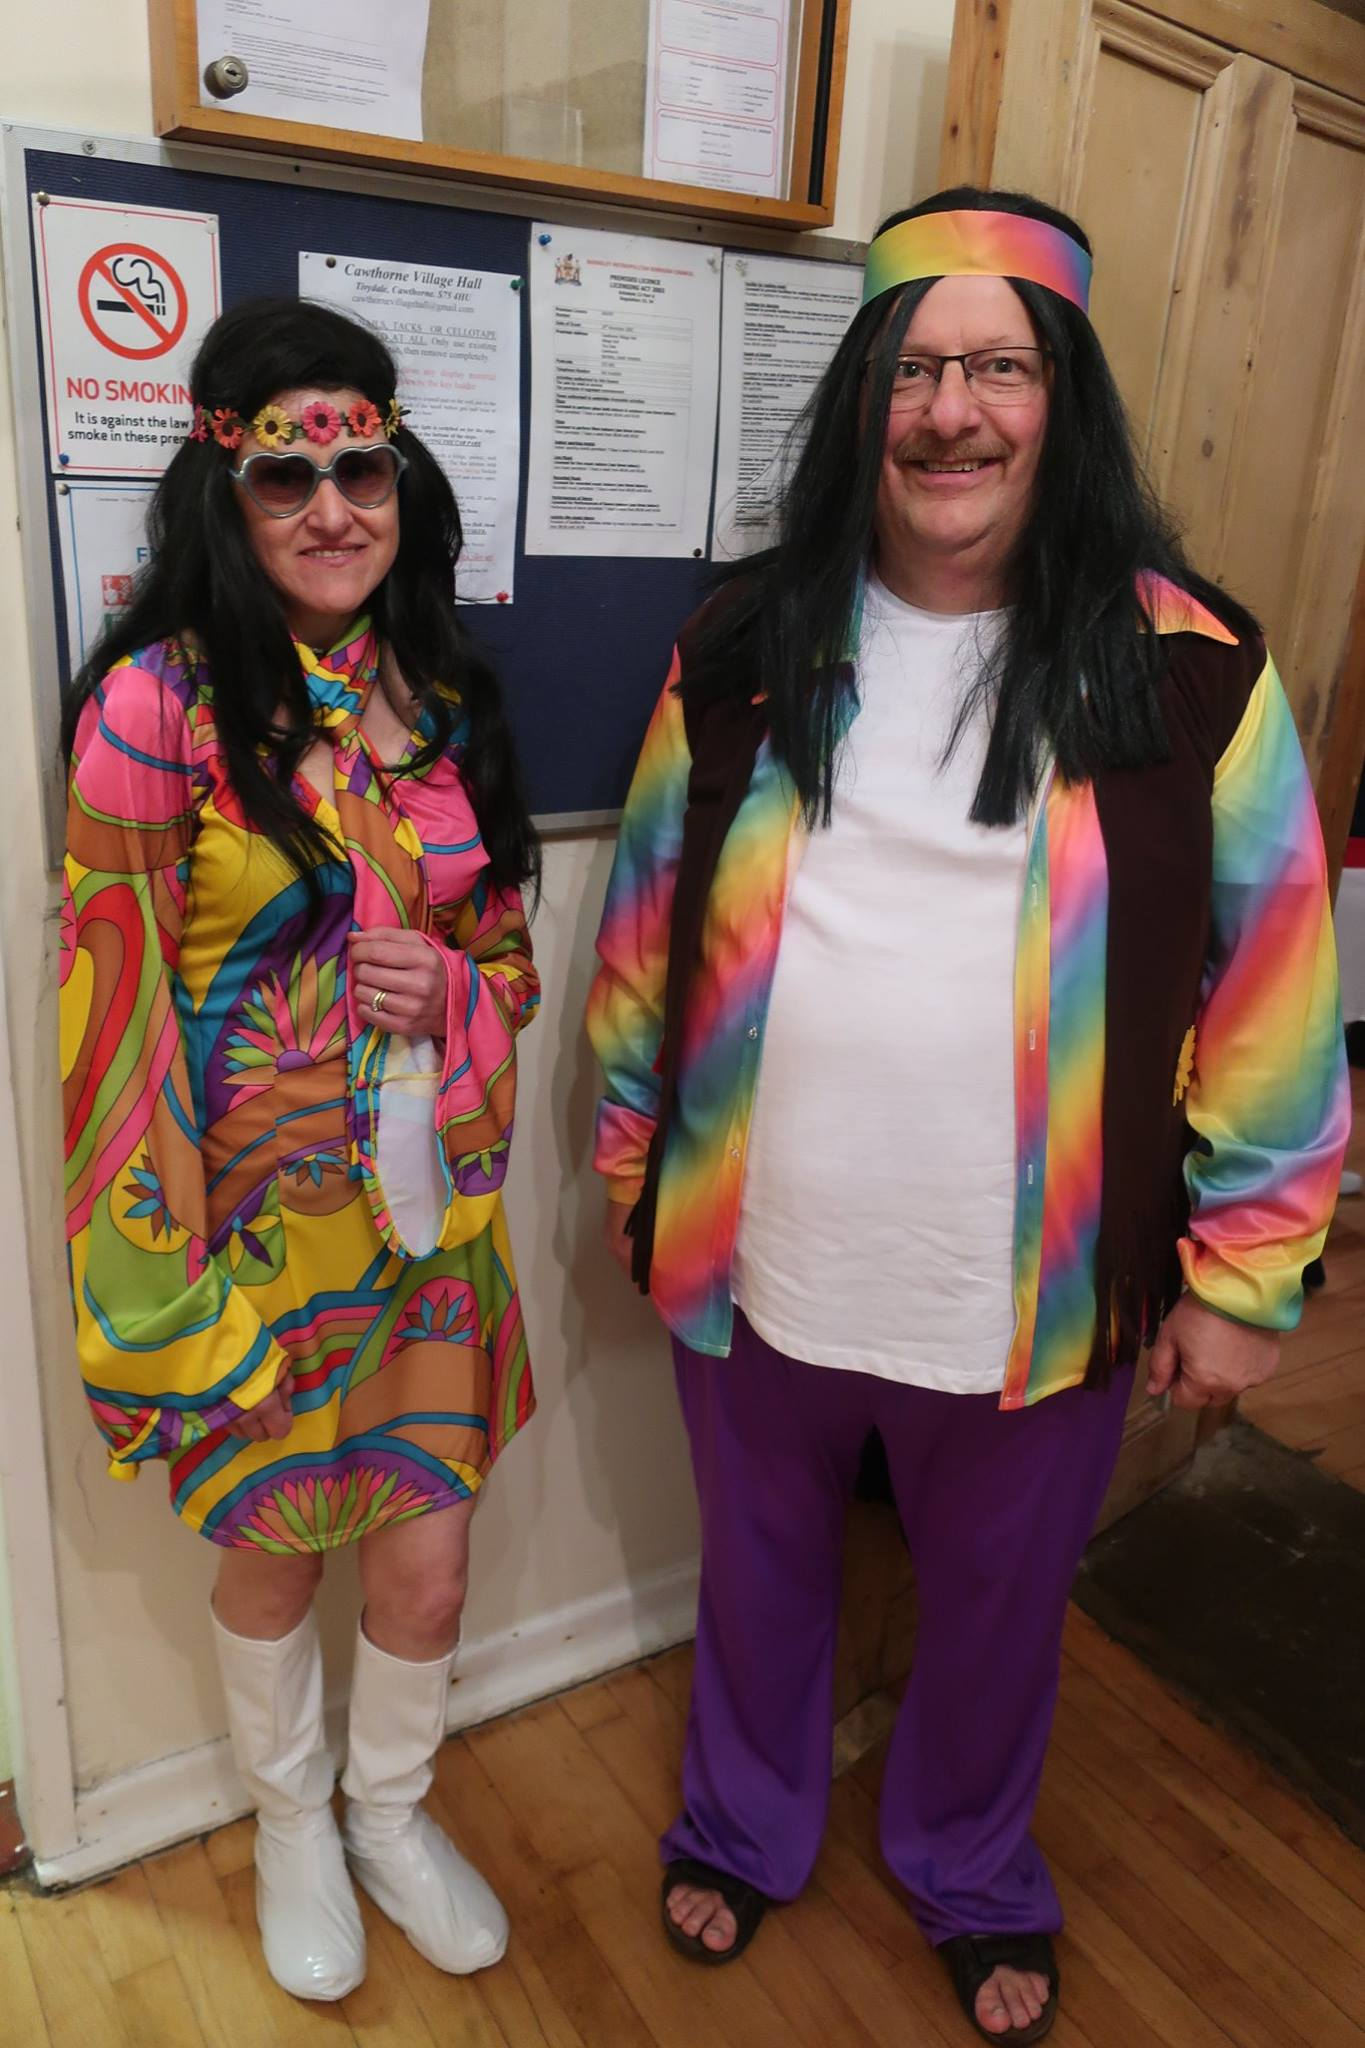 Alyson and Mick in psychedelic sixties style outfits